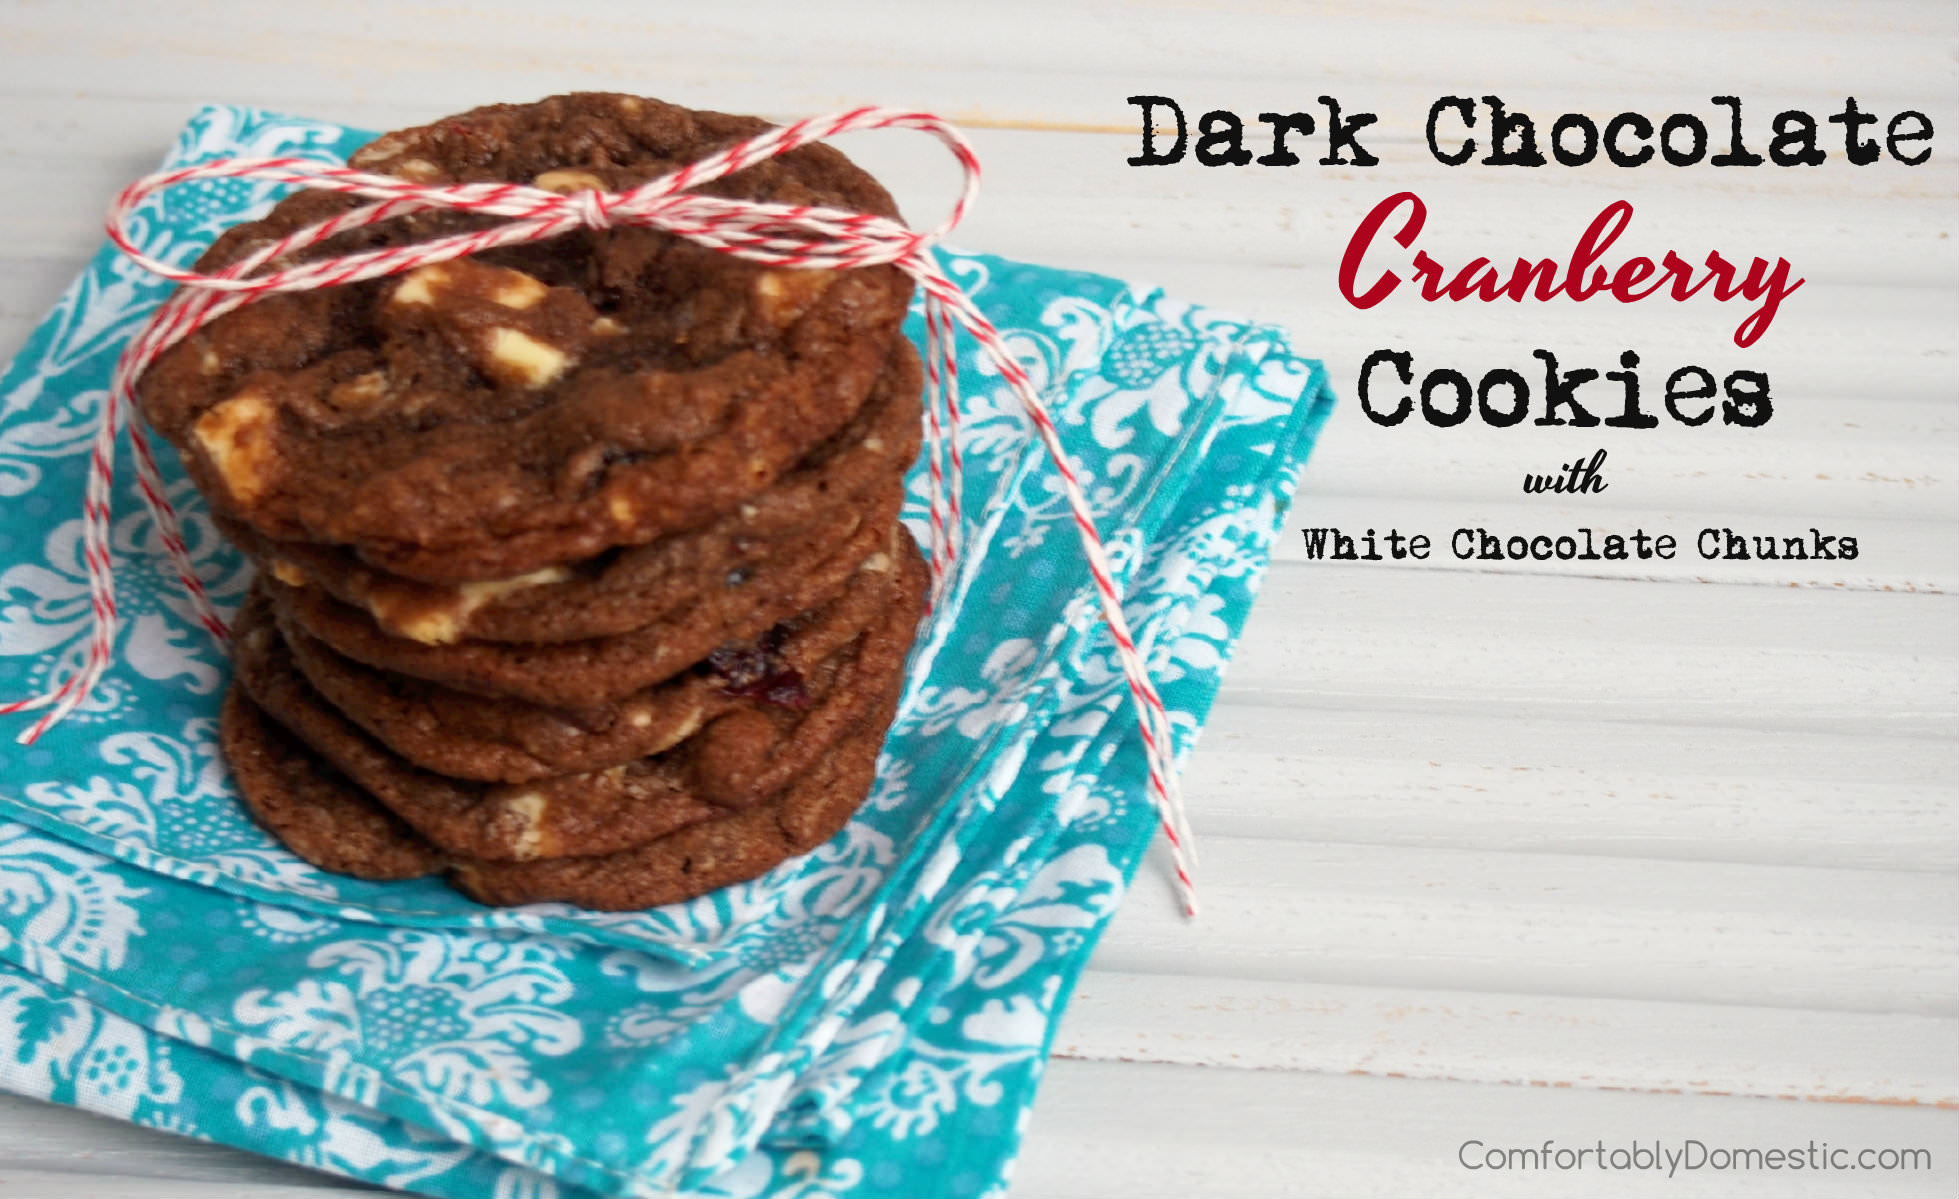 Dark Chocolate Cranberry Cookies with White Chocolate Chunks ...